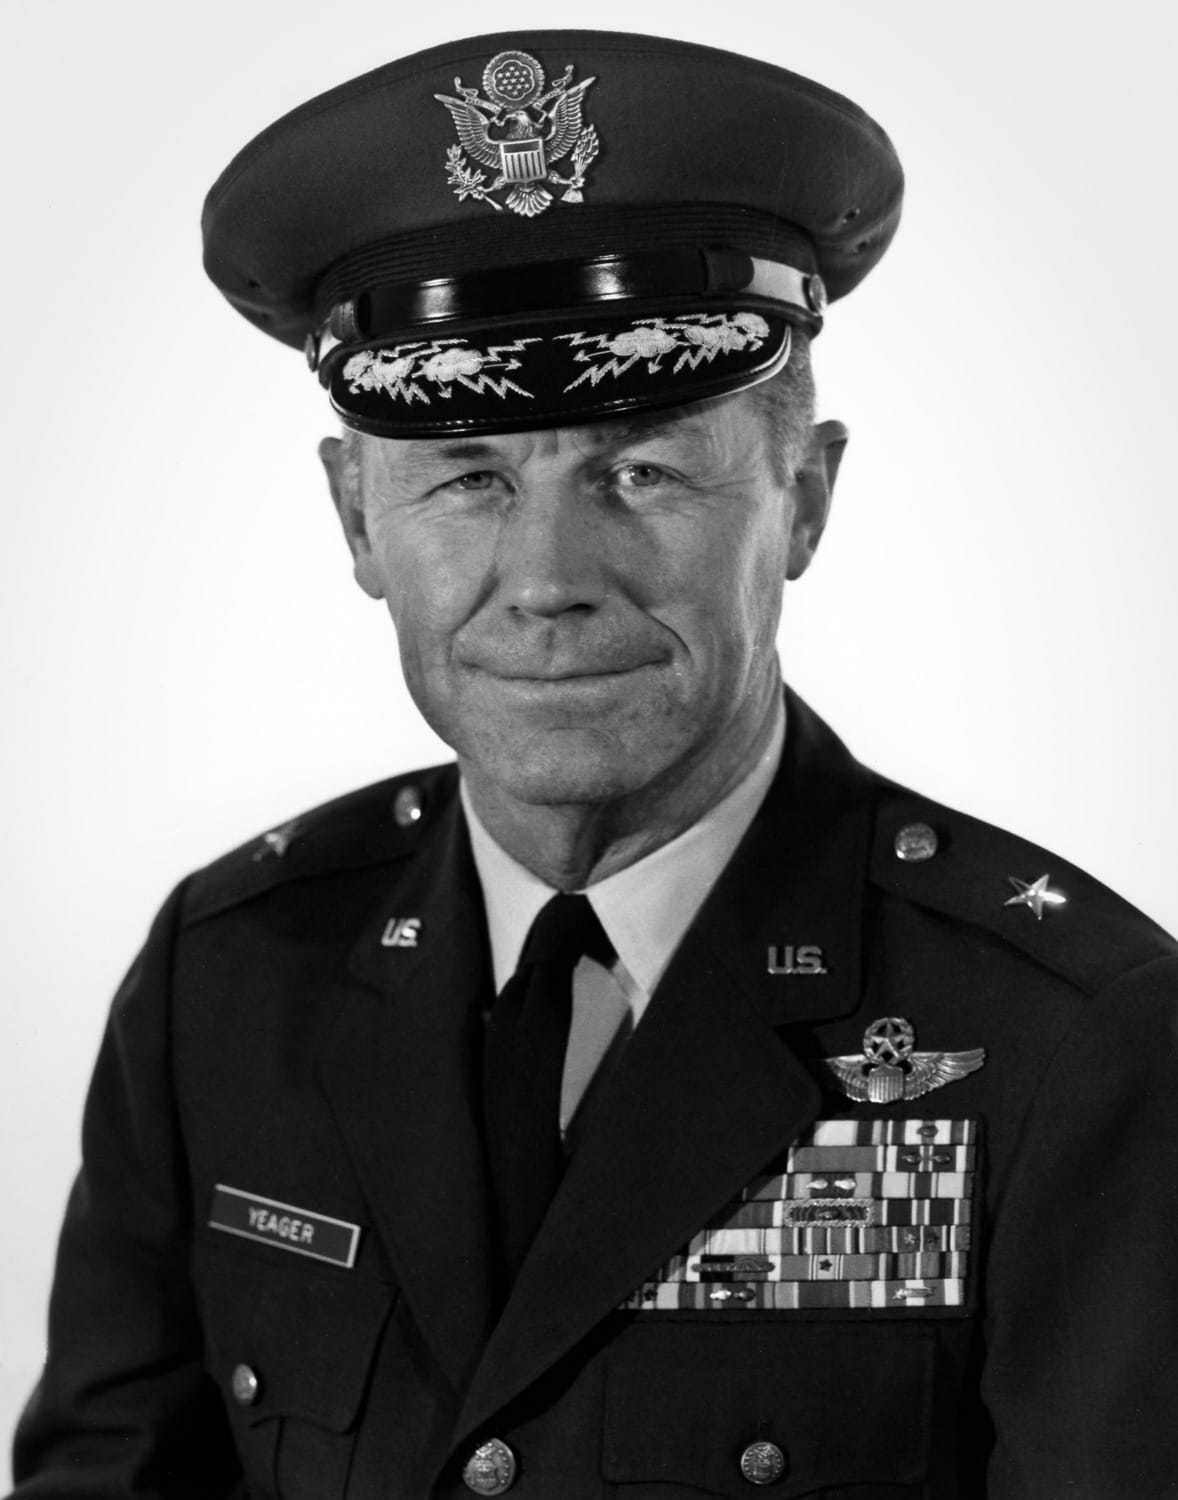 """Chuck Yeager """"width ="""" 1178 """"height ="""" 1500 """"srcset ="""" https://www.mybuckhannon.com/wp-content/uploads/2019/02/ChuckYeager.jpg 1178w, https://www.mybuckhannon.com /wp-content/uploads/2019/02/ChuckYeager-236x300.jpg 236w, https://www.mybuckhannon.com/wp-content/uploads/2019/02/ChuckYeager-768x978.jpg 768w, https: // www .mybuckhannon.com / wp-content / uploads / 2019/02 / ChuckYeager-804x1024.jpg 804w, https://www.mybuckhannon.com/wp-content/uploads/2019/02/ChuckYeager-696x886.jpg 696w, https : //www.mybuckhannon.com/wp-content/uploads/2019/02/ChuckYeager-1068x1360.jpg 1068w, https://www.mybuckhannon.com/wp-content/uploads/2019/02/ChuckYeager-330x420. jpg 330w, https://www.mybuckhannon.com/wp-content/uploads/2019/02/ChuckYeager-600x764.jpg 600w """"sizes ="""" (max-width: 1178px) 100vw, 1178px"""